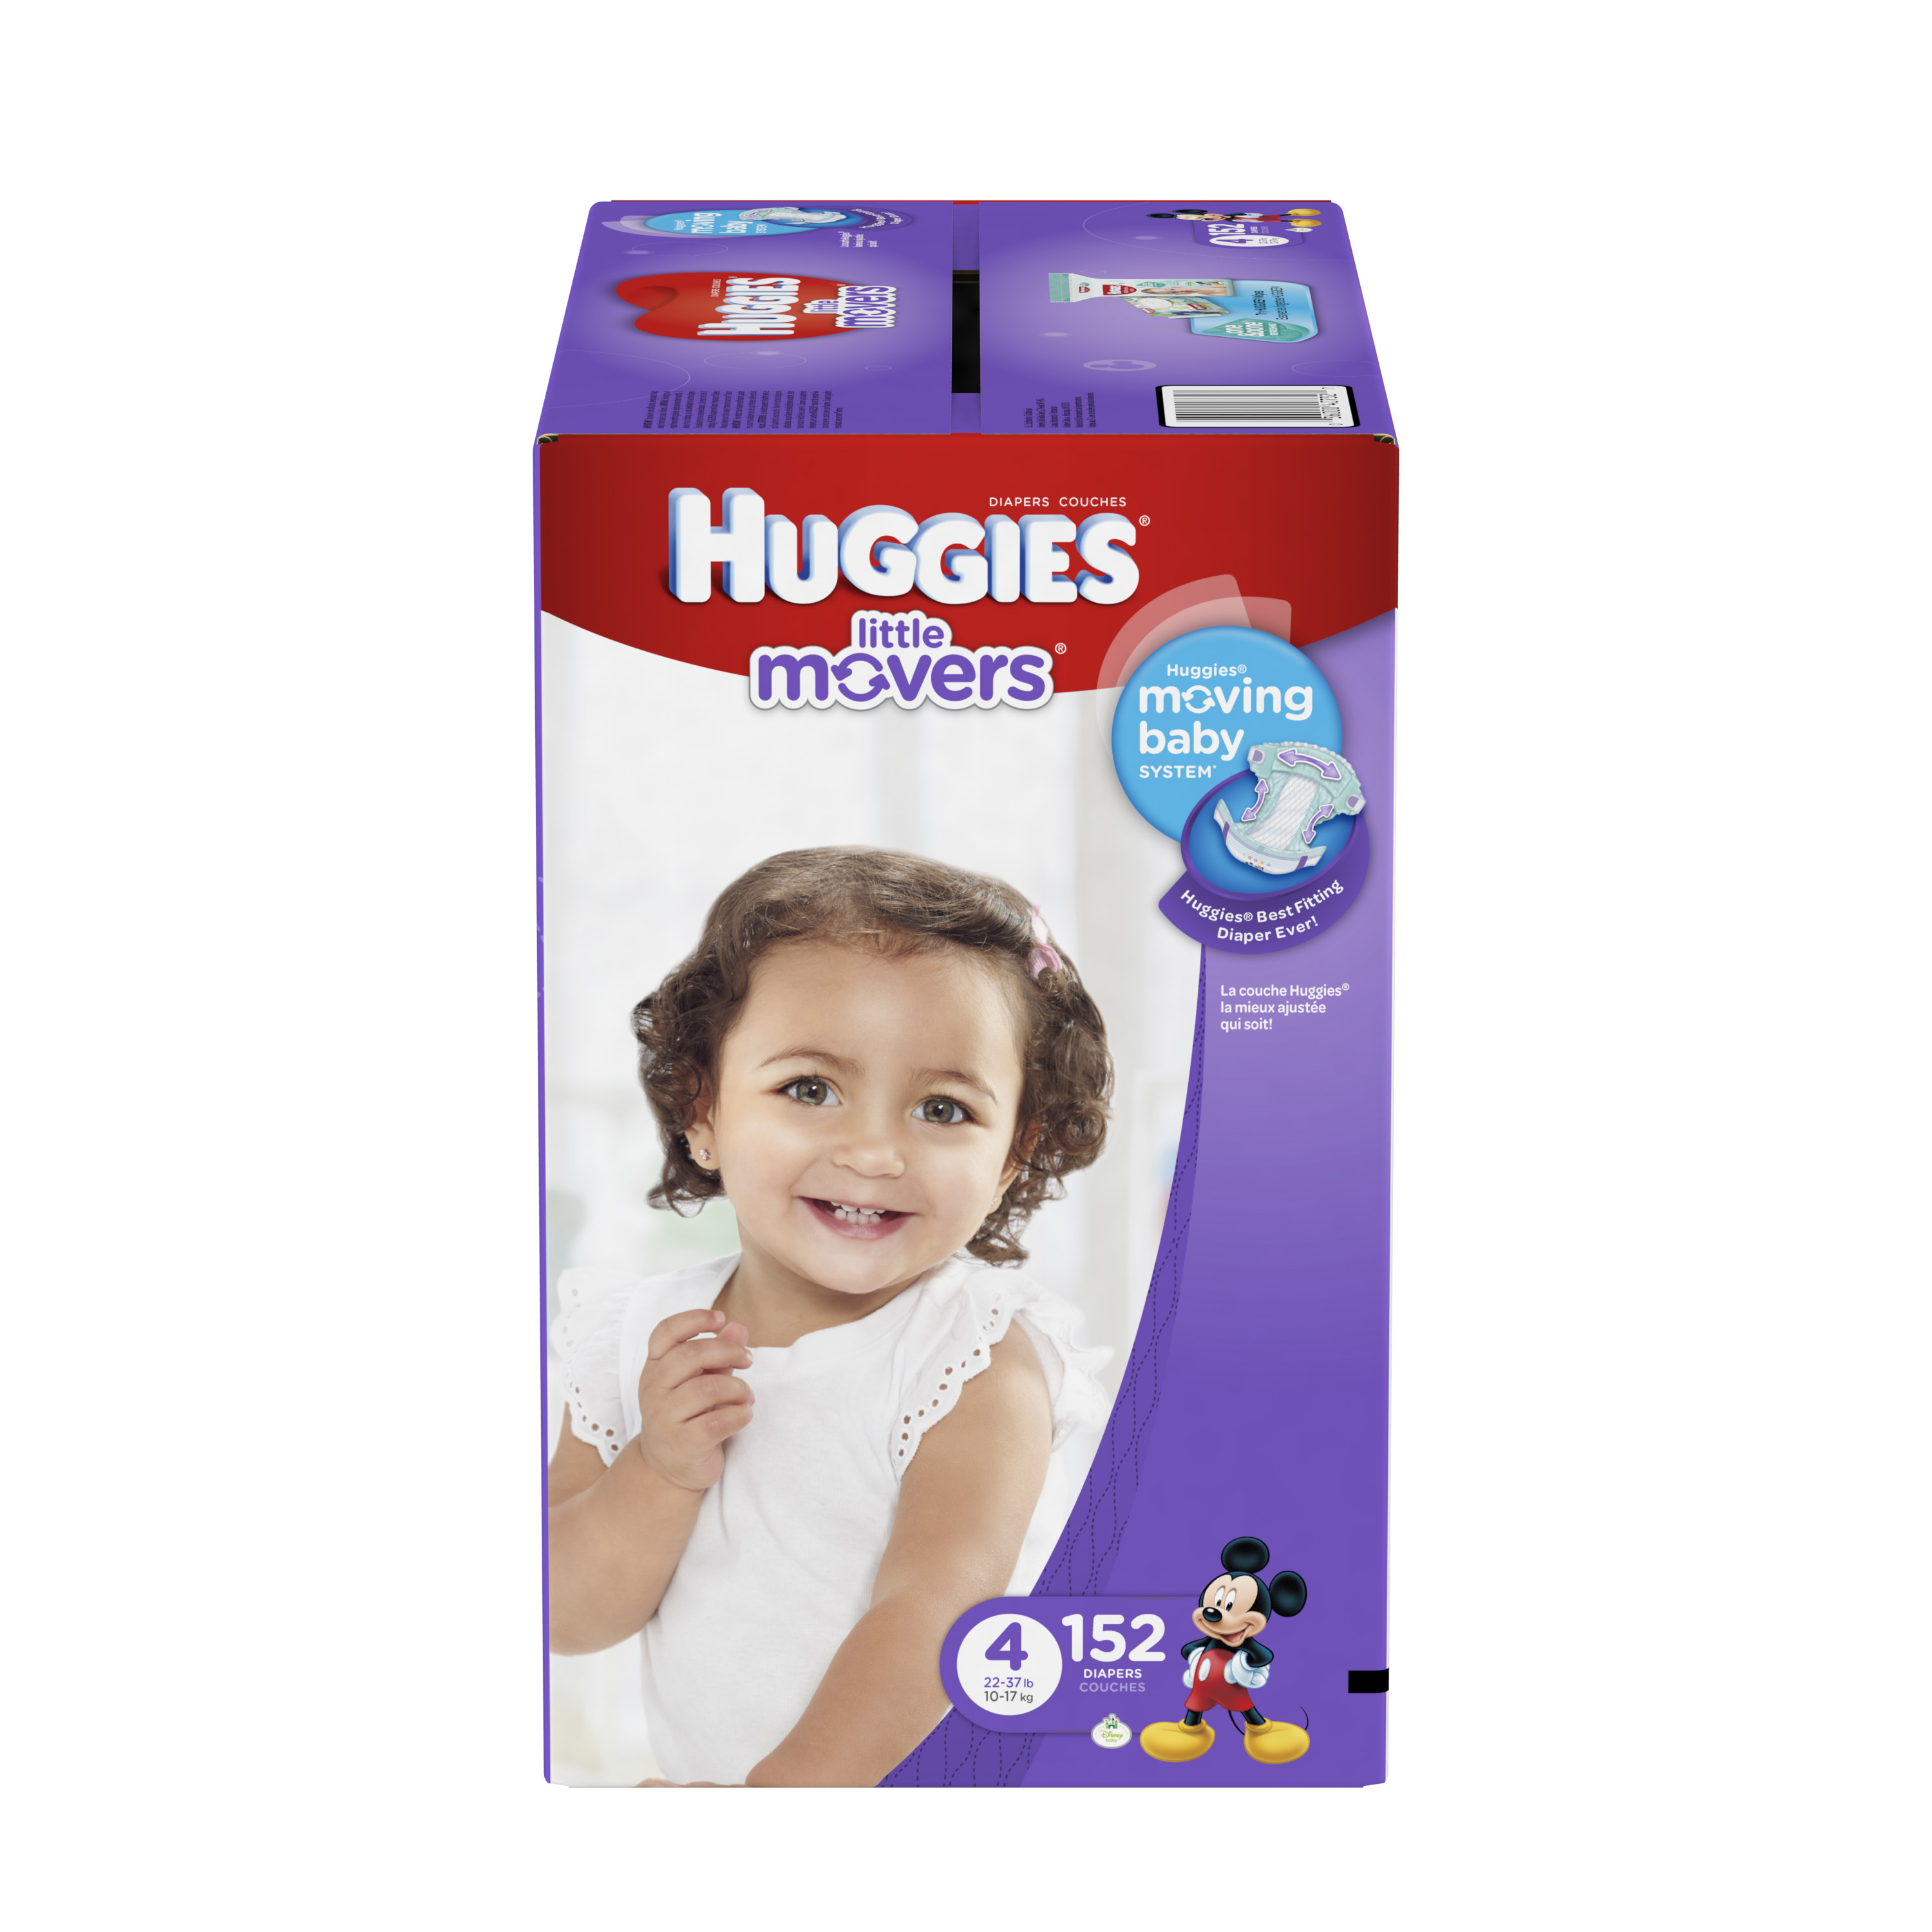 HUGGIES Little Movers Diapers, Size 4, 152 Diapers - Walmart.com